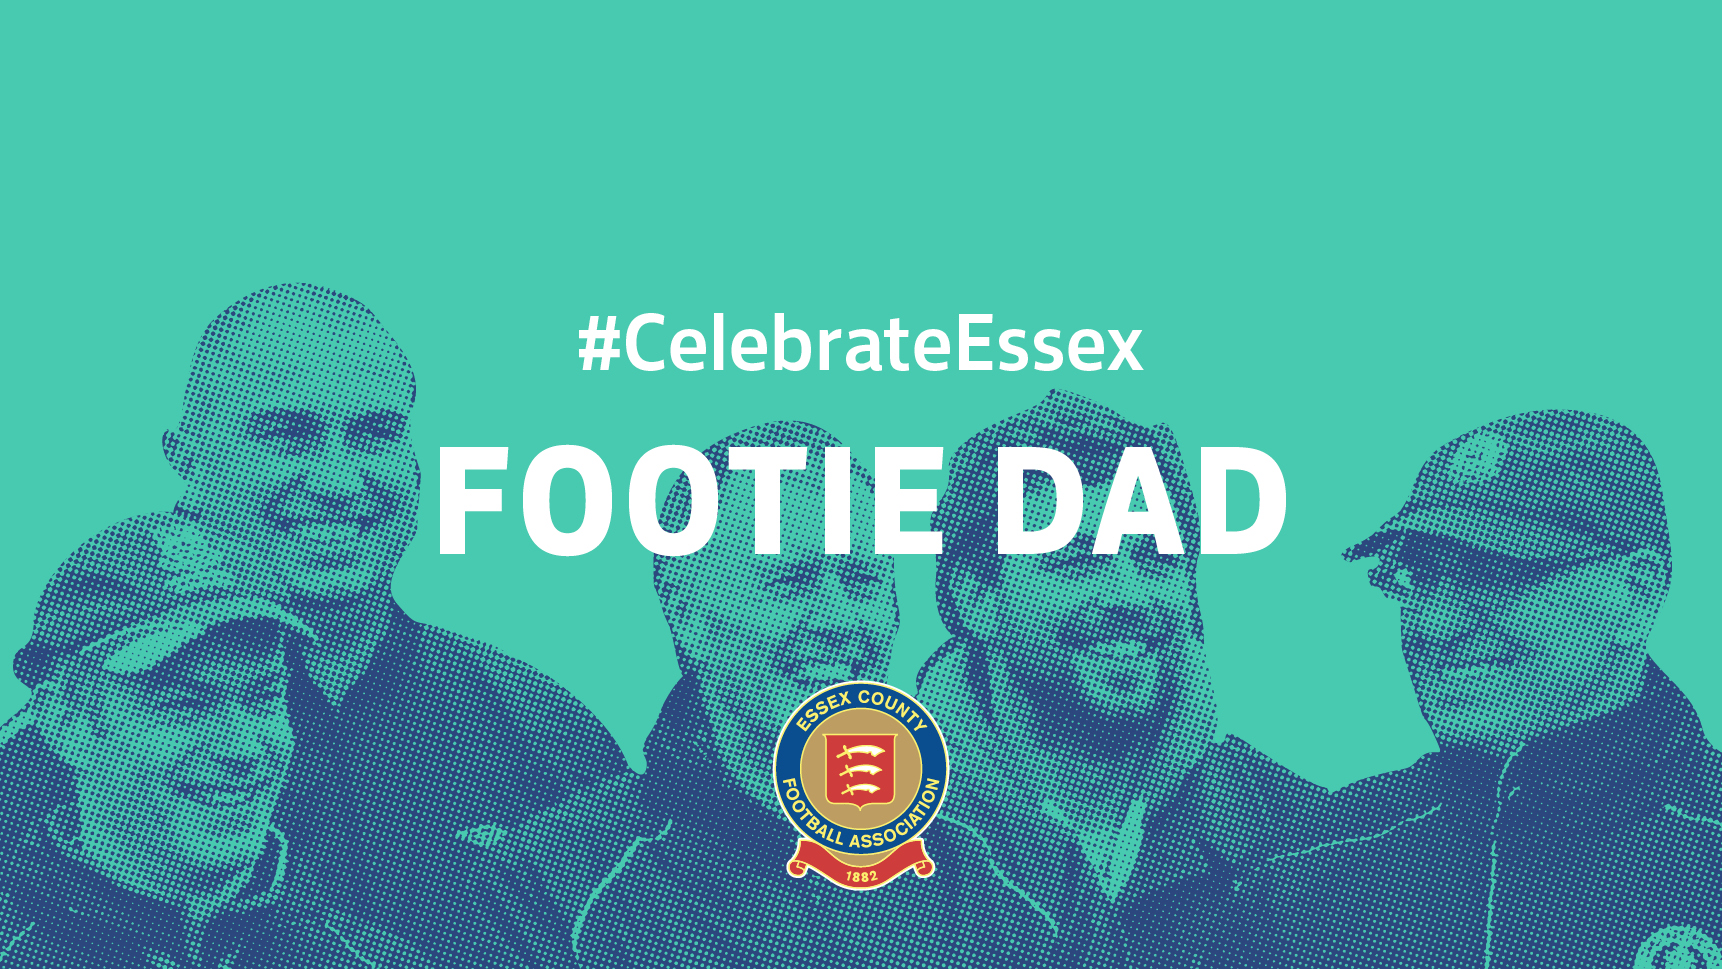 #CelebrateEssex Footie Dad Winner